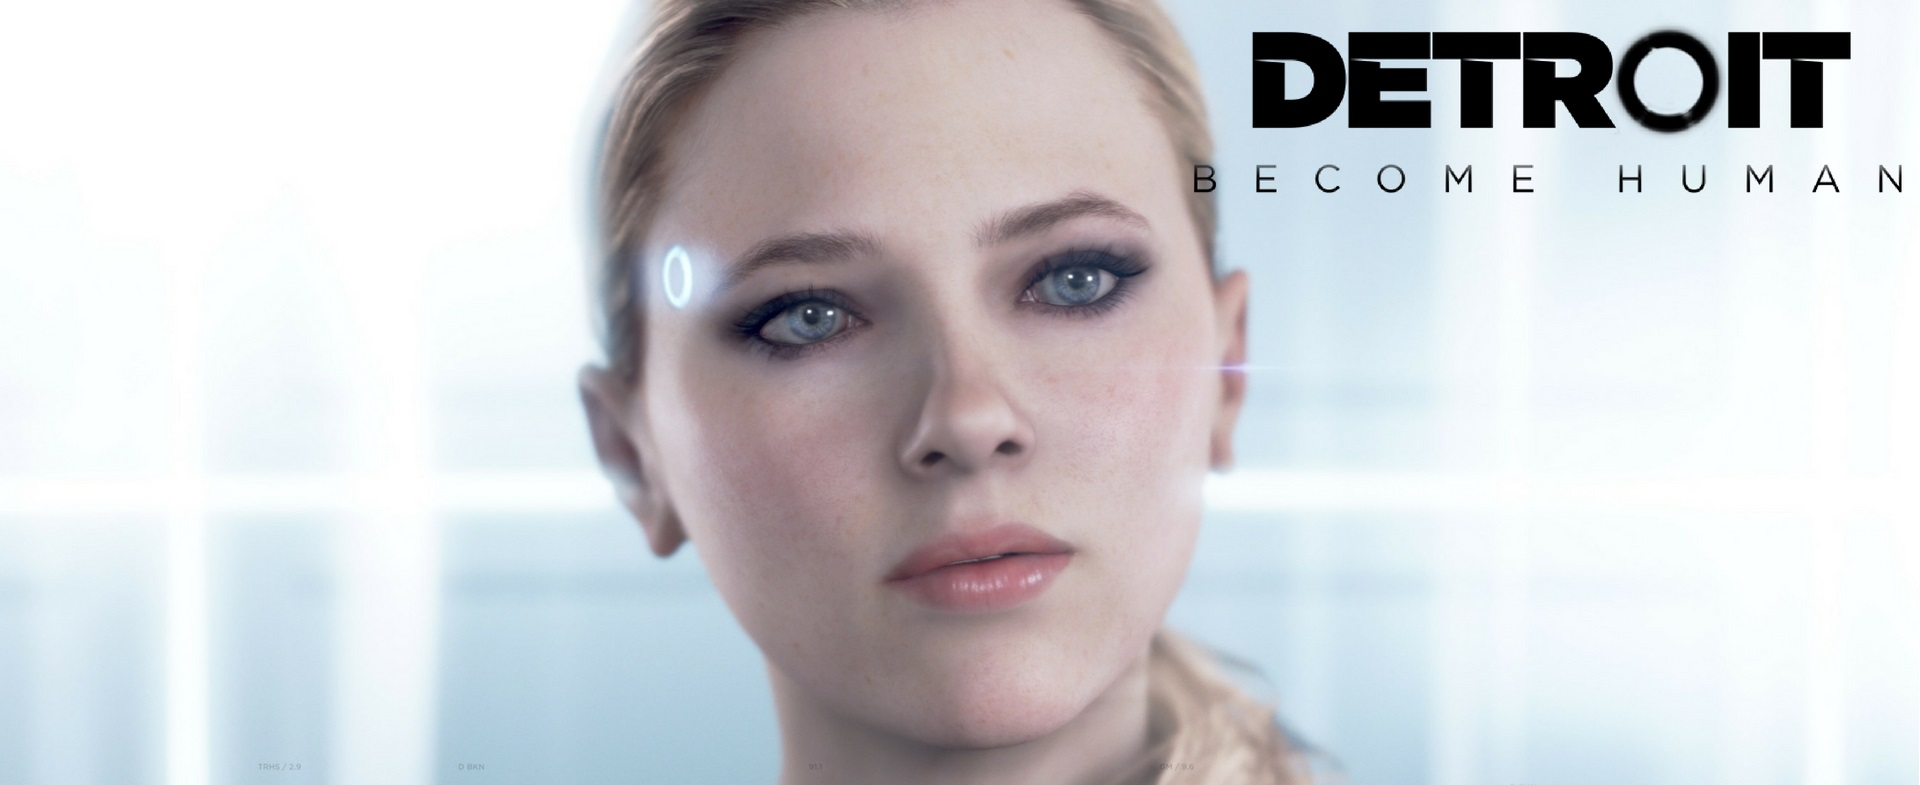 Detroit: Become Human - Test Bandeau PS4 PRO